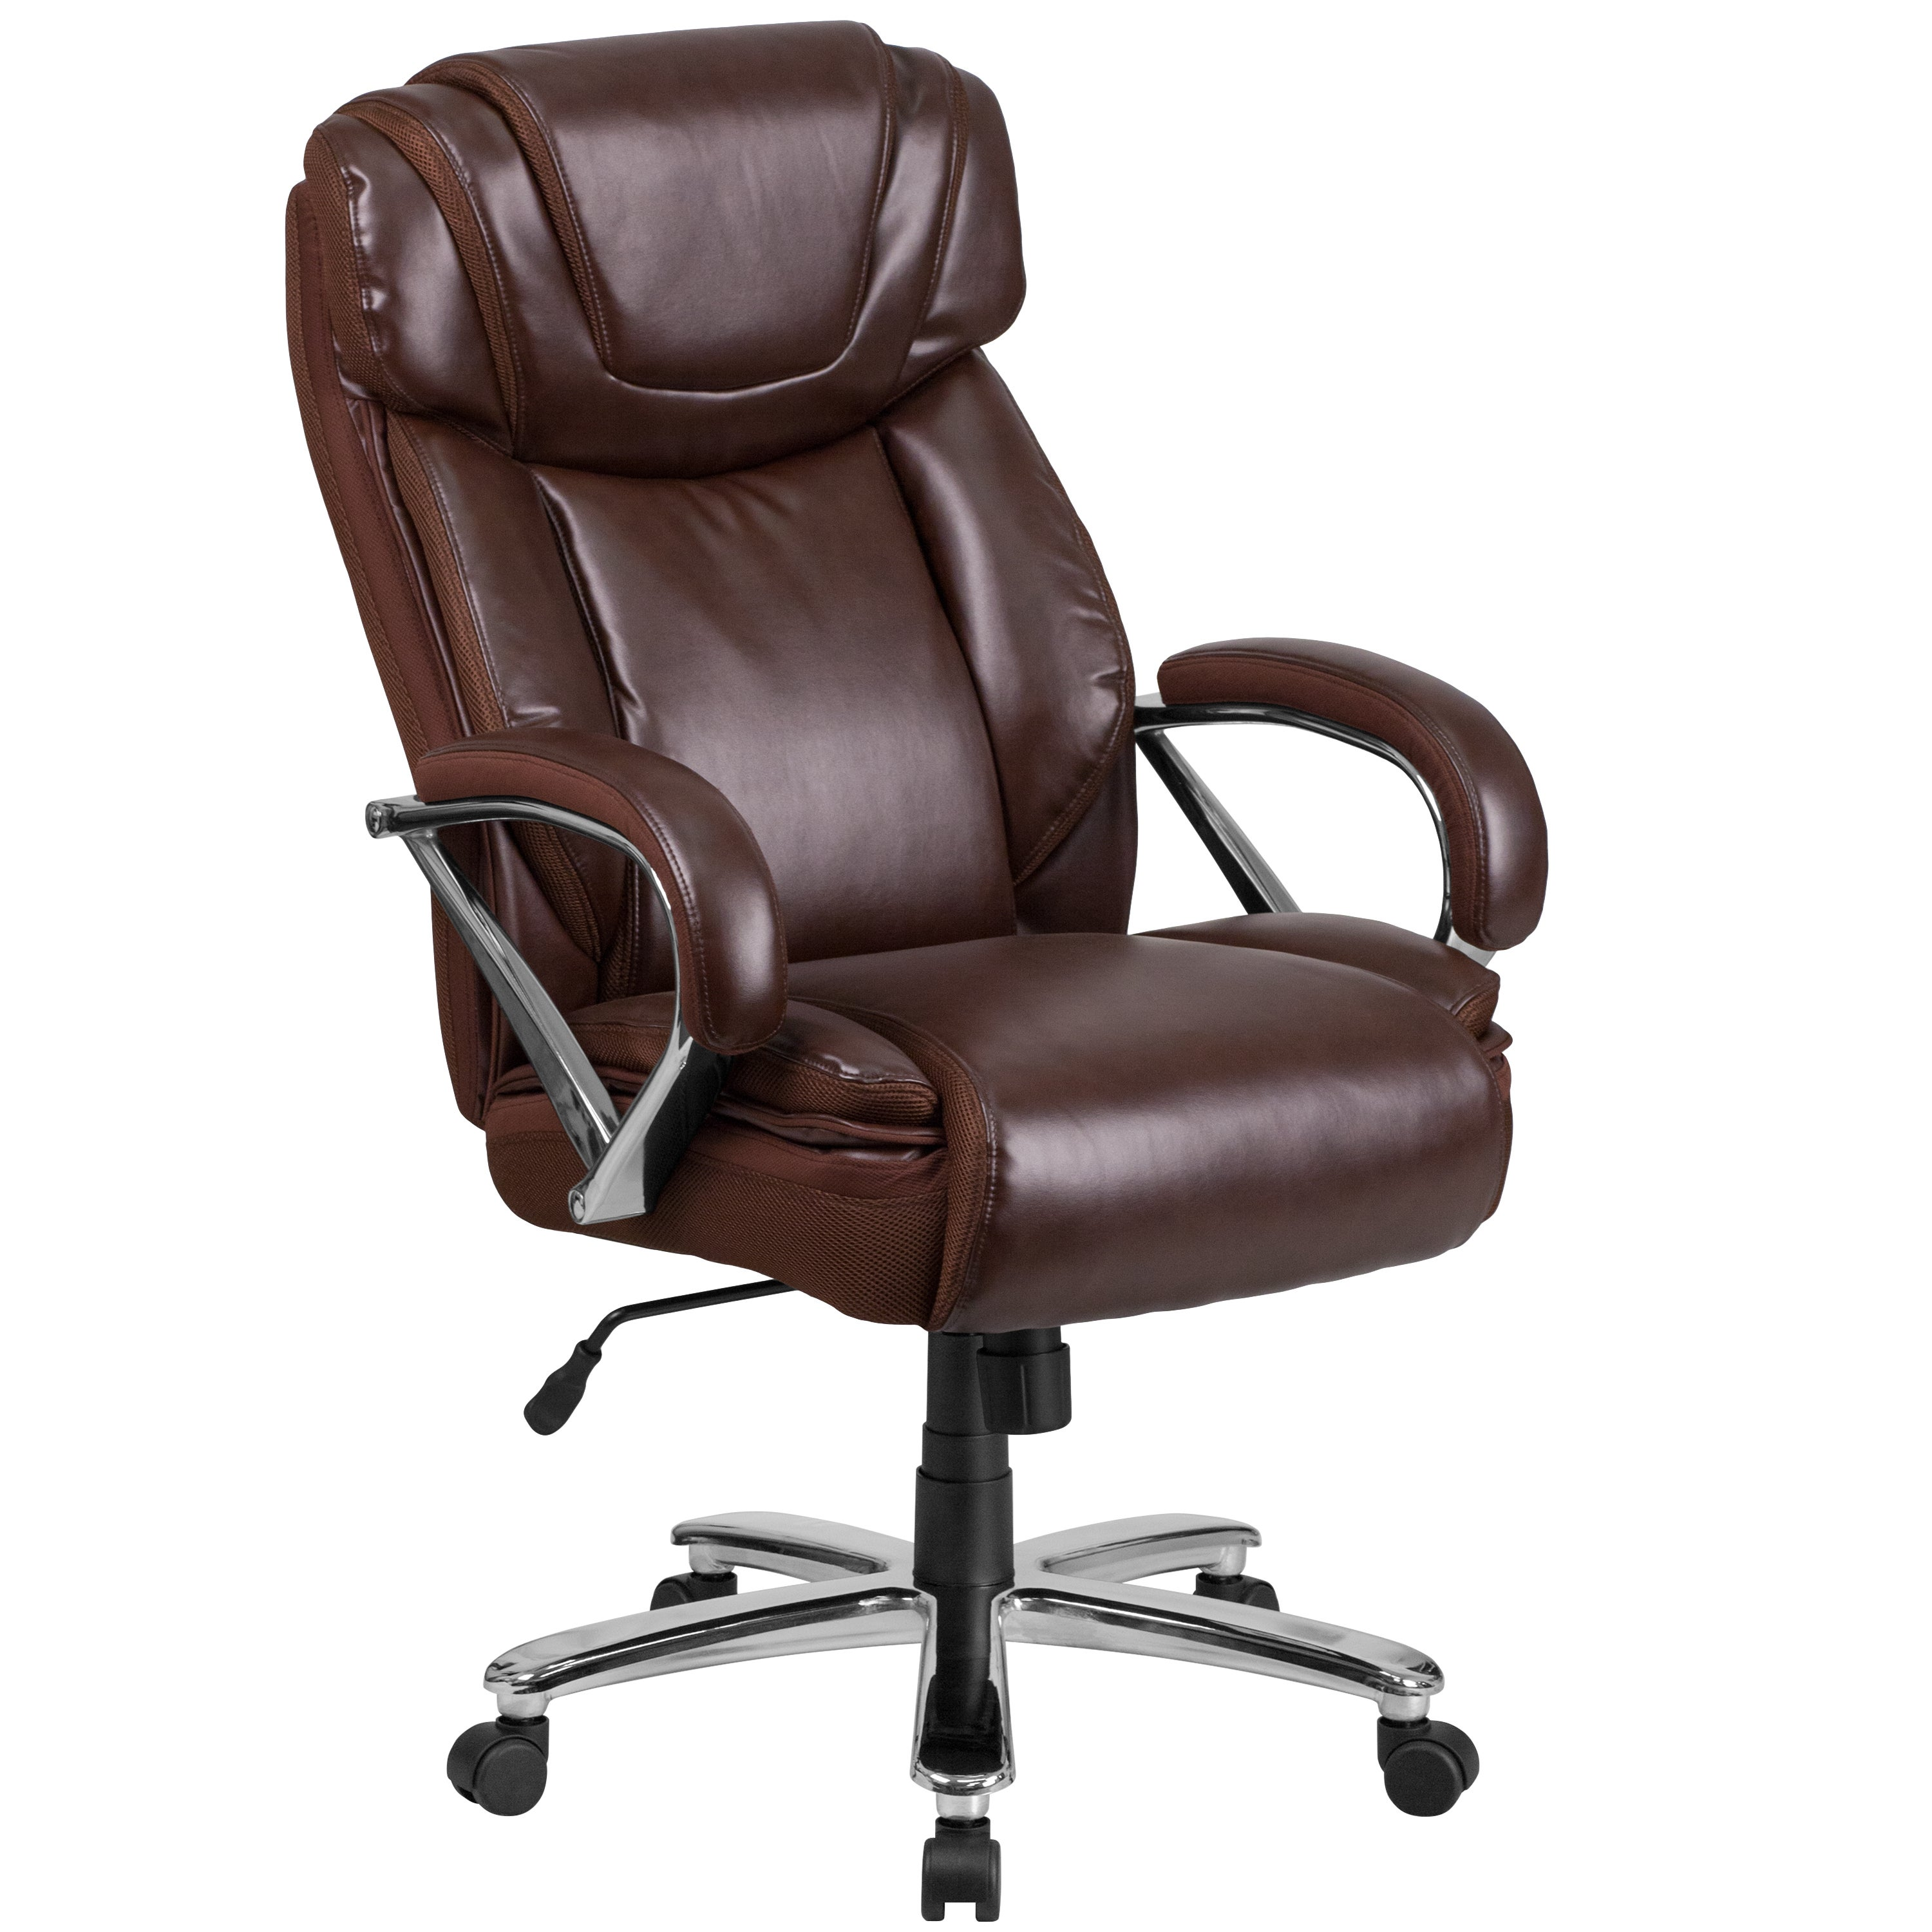 Hercules Series Tall Leather Executive Swivel Office Chair With Extra Wide Seat Free Shipping Today 20809890